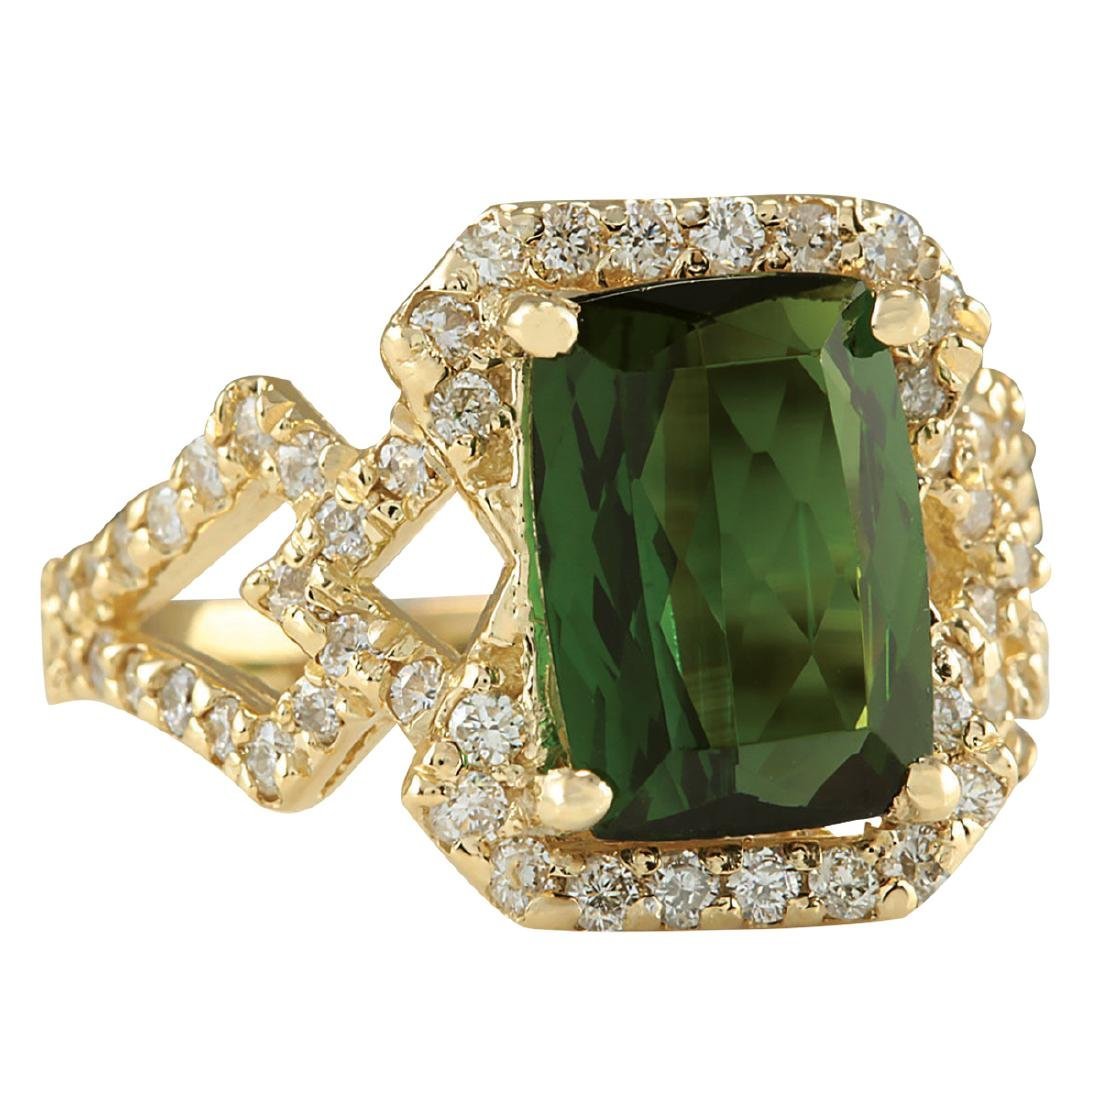 3.84Ct Natural Green Tourmaline And Diamond Ring In18K - 2